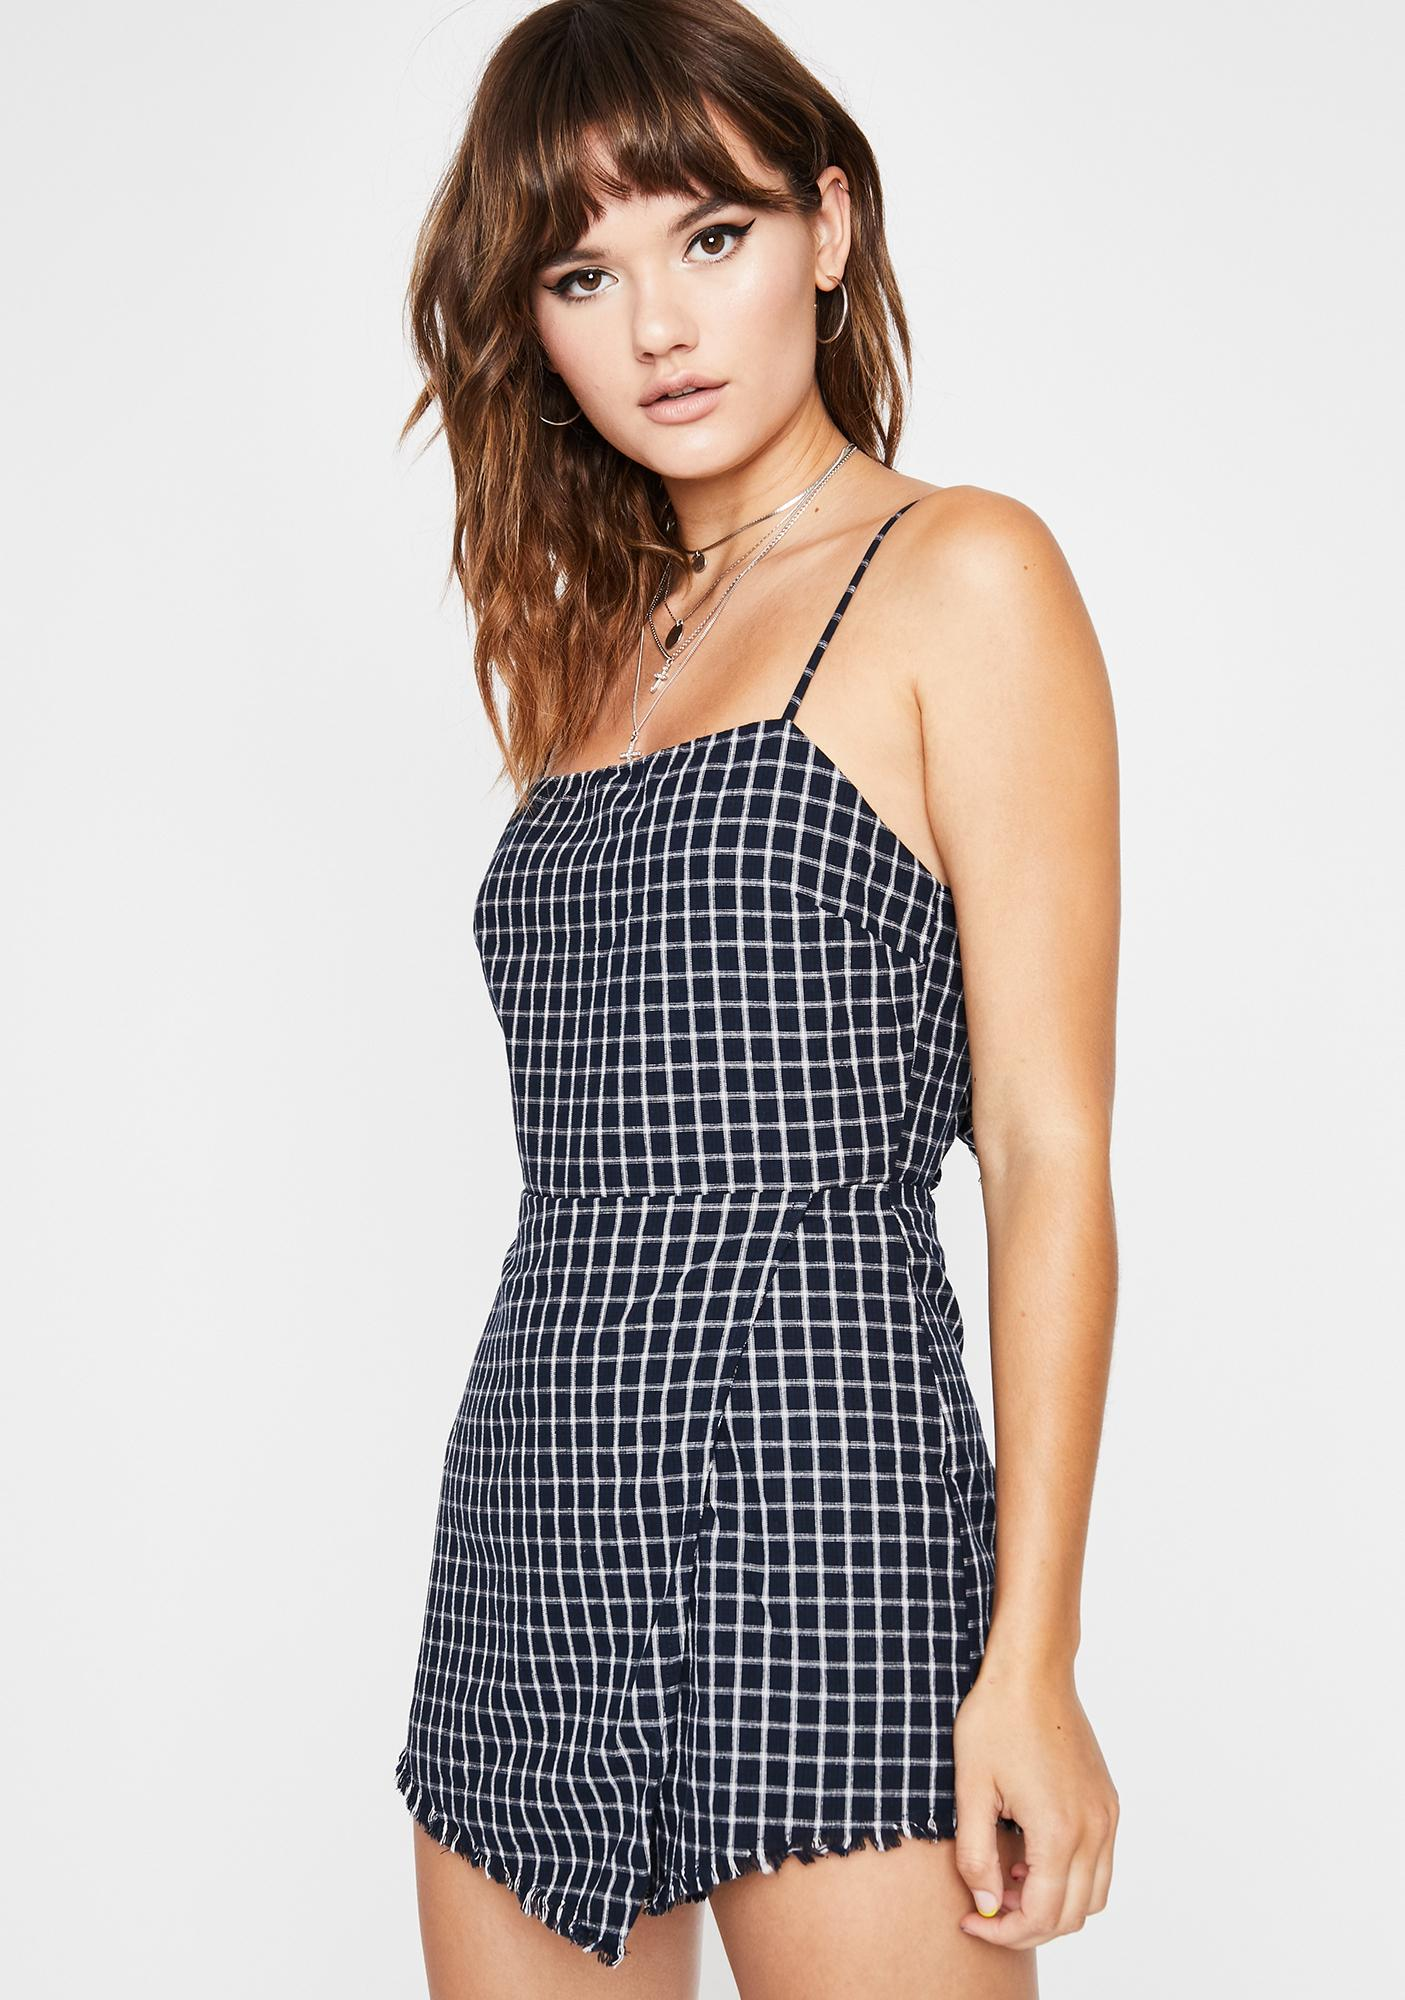 Adorable Trouble Gingham Romper